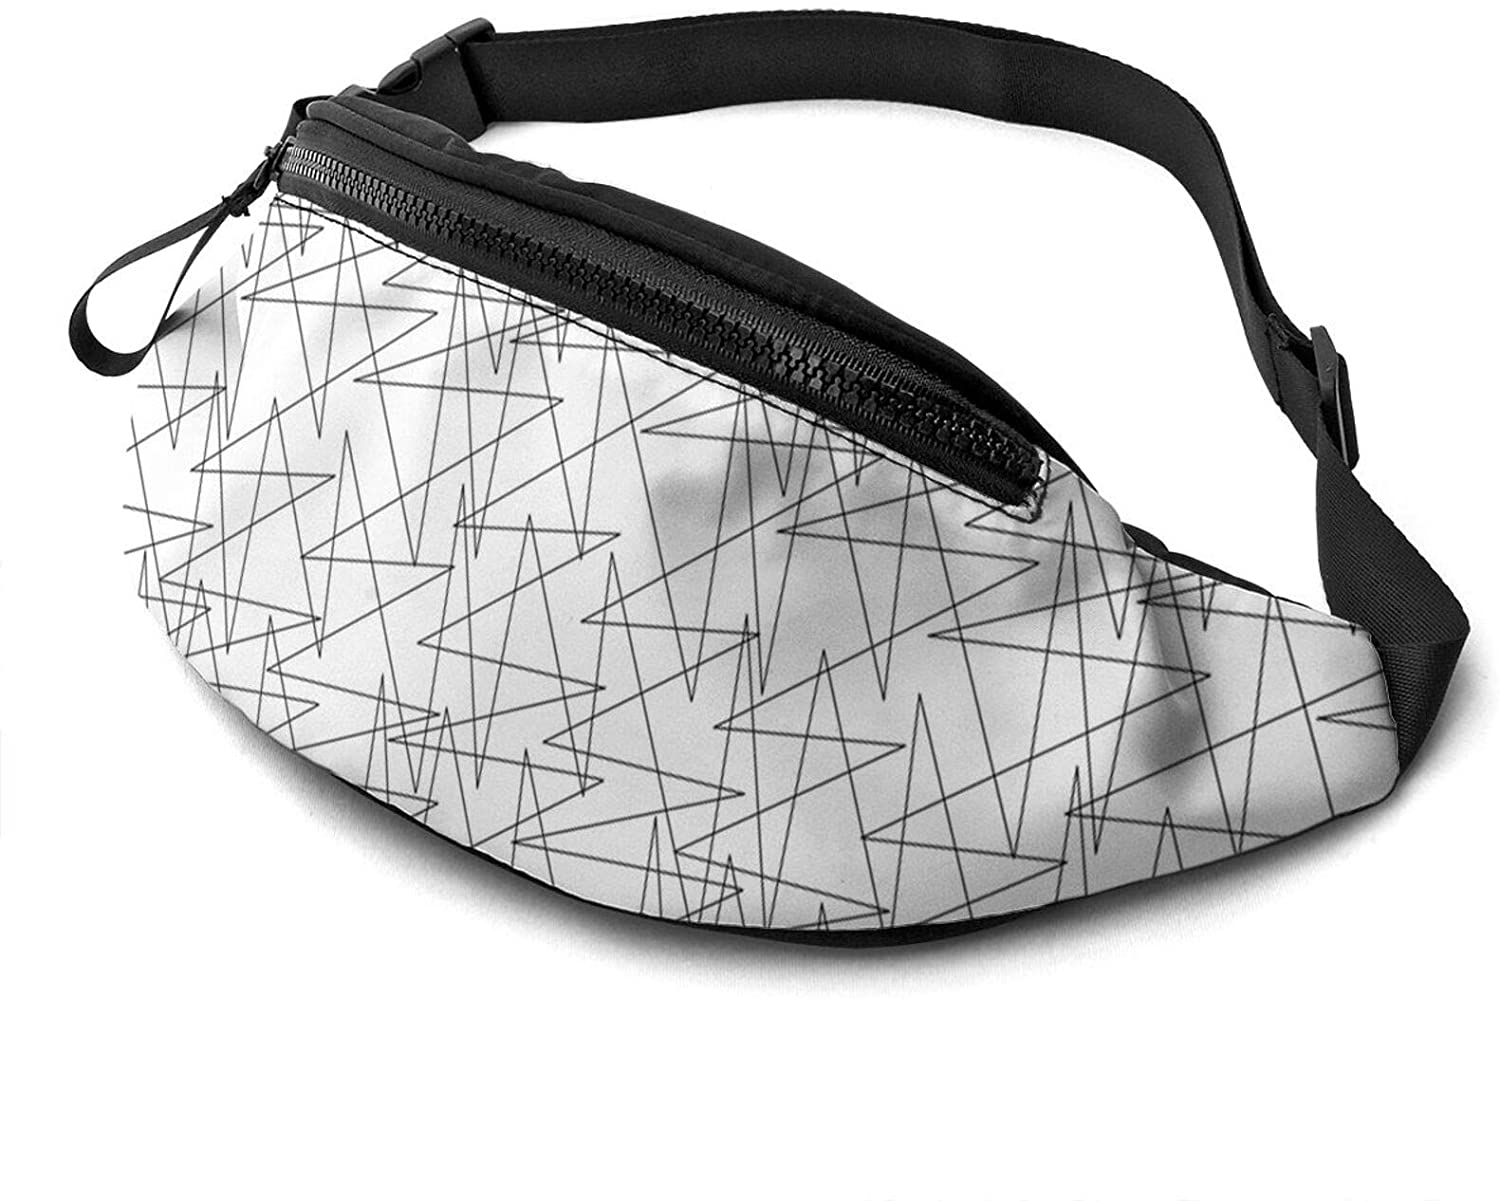 Dujiea Fanny Pack, Black And White Lines Waist Bag With Headphone Hole Belt Bag Adjustable Sling Pocket Fashion Hip Bum Bag For Women Men Kids Outdoors Casual Travelling Hiking Cycling